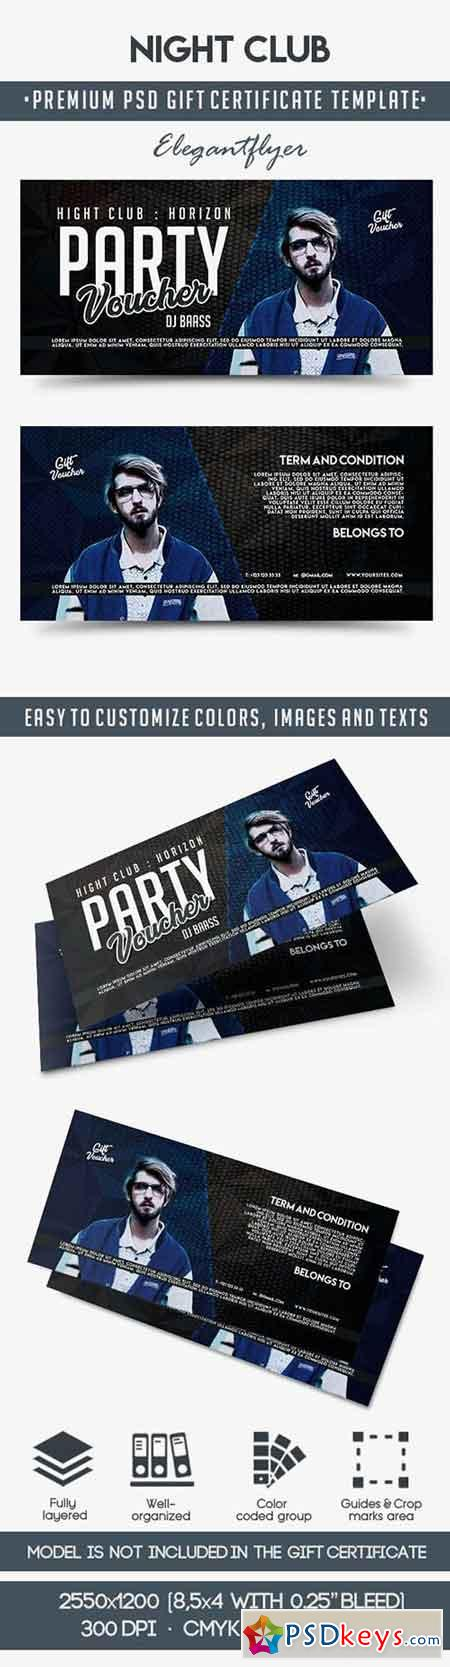 Night Club Gift Voucher Template